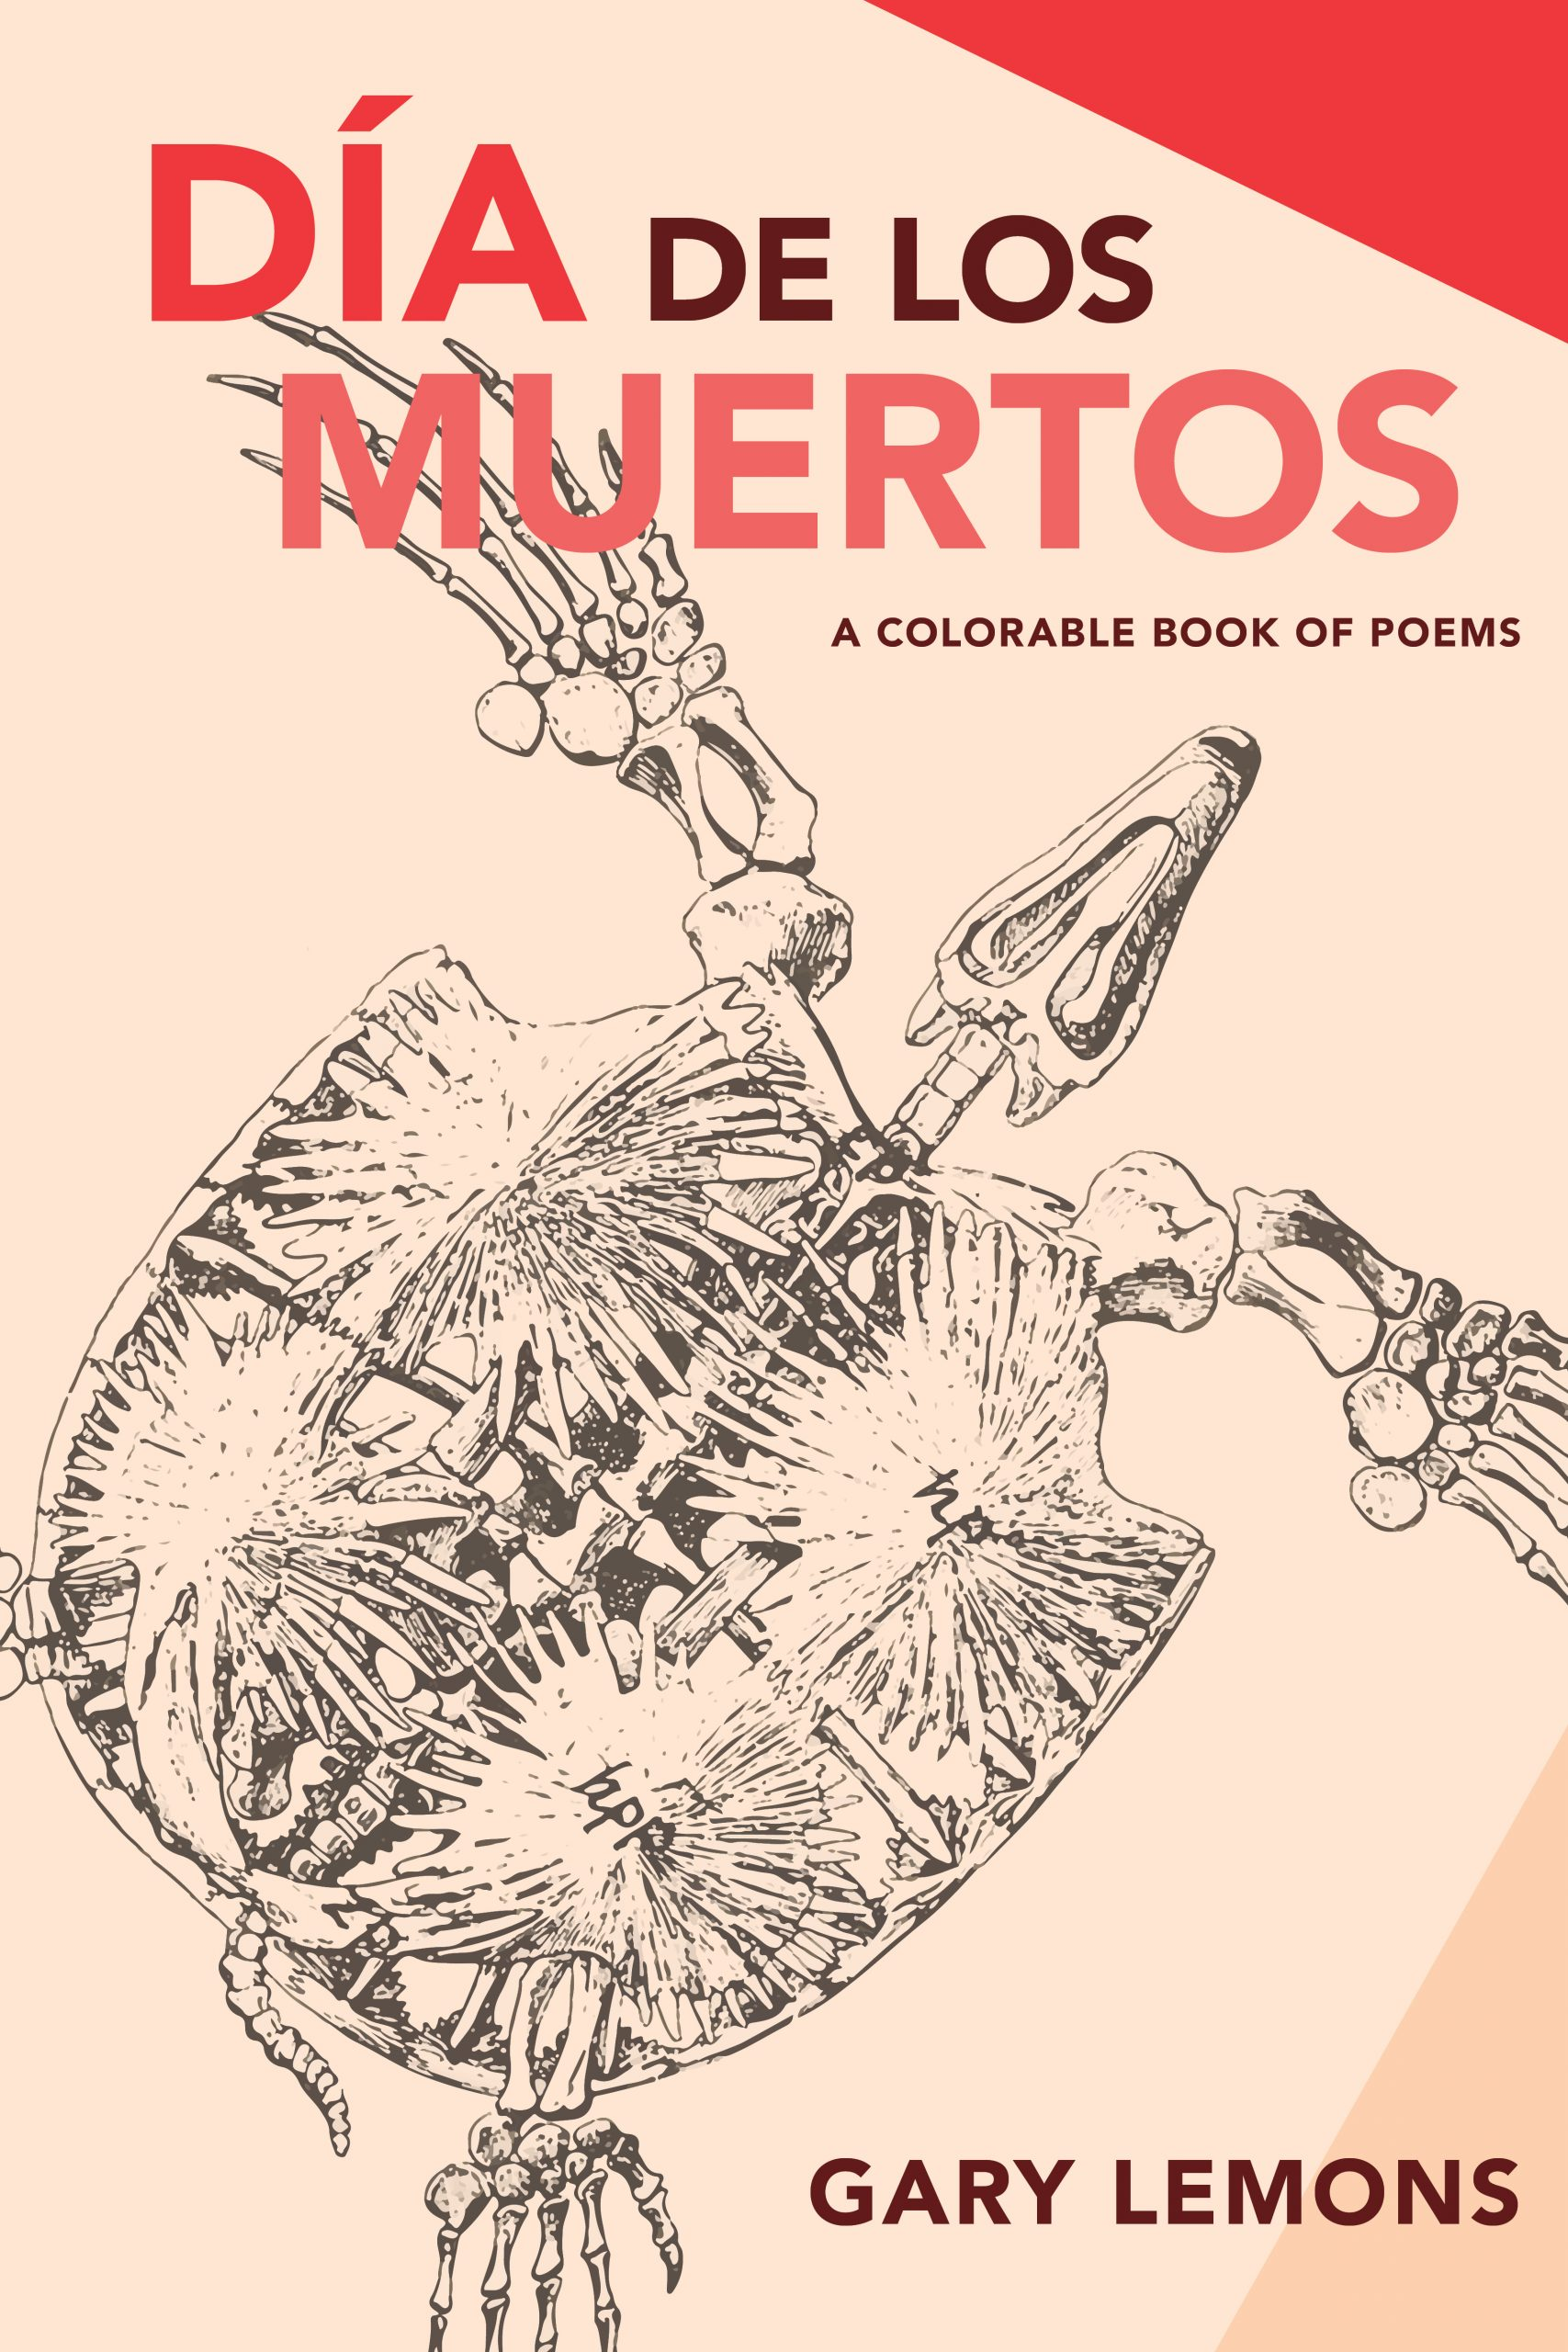 A skeleton of a turtle in the middle and script that reads Dias de los Muertos a colorable book of poems by Gary Lemons.